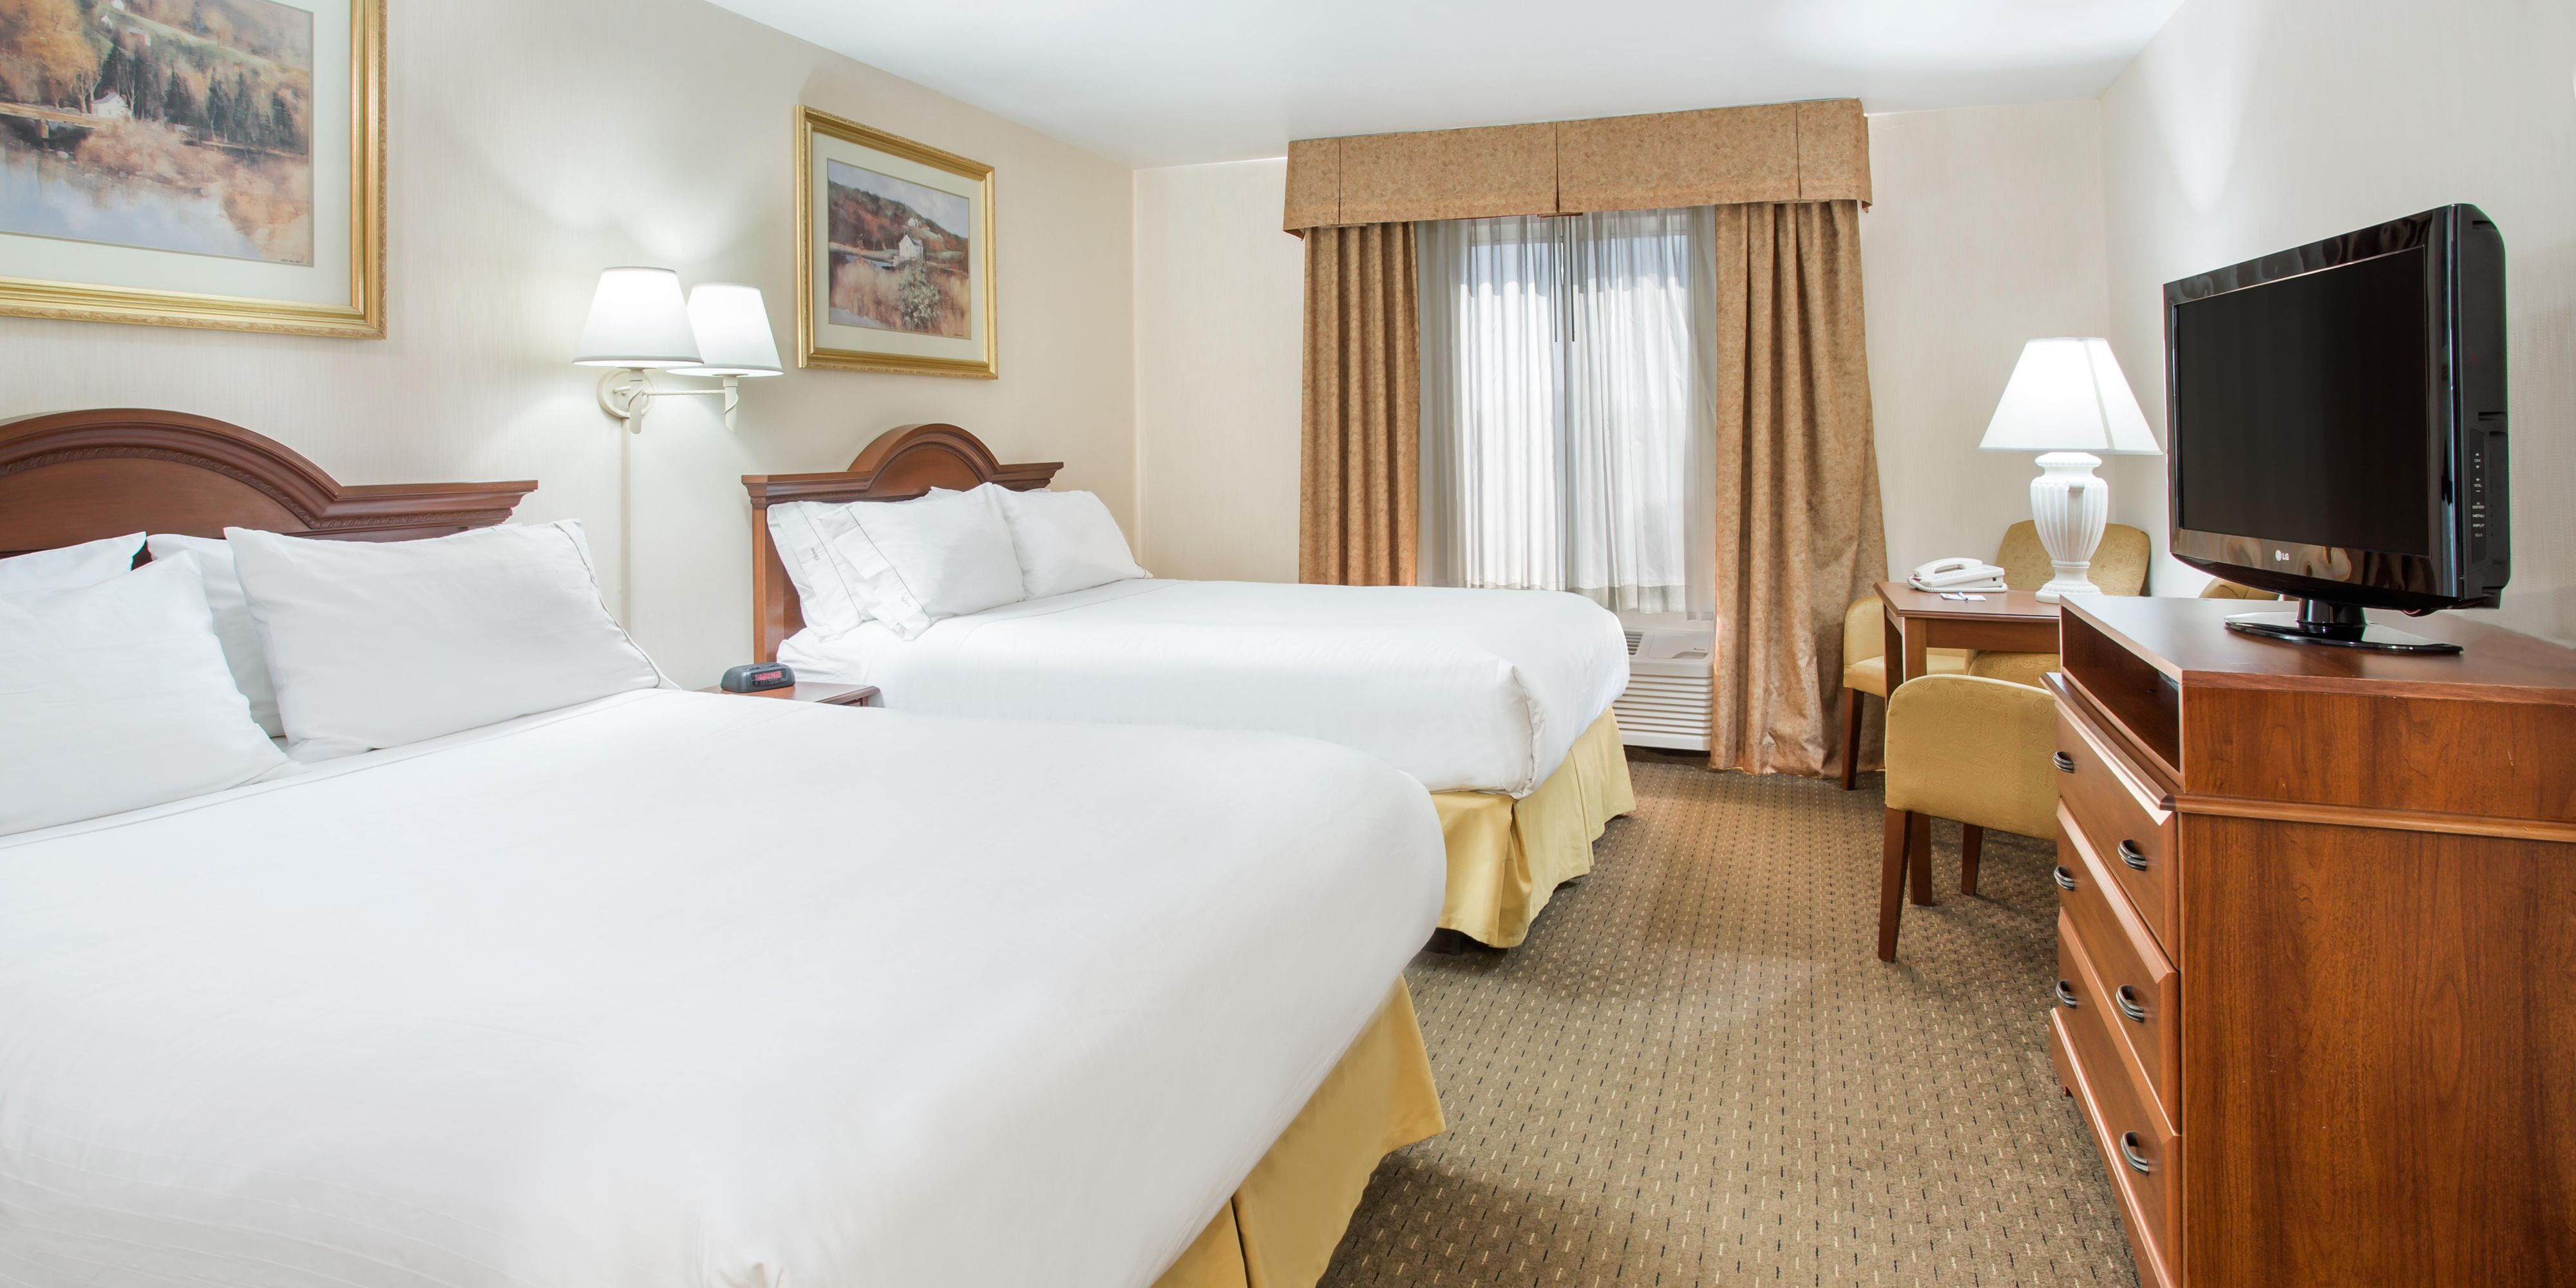 Holiday Inn Express & Suites Marion Hotel by IHG